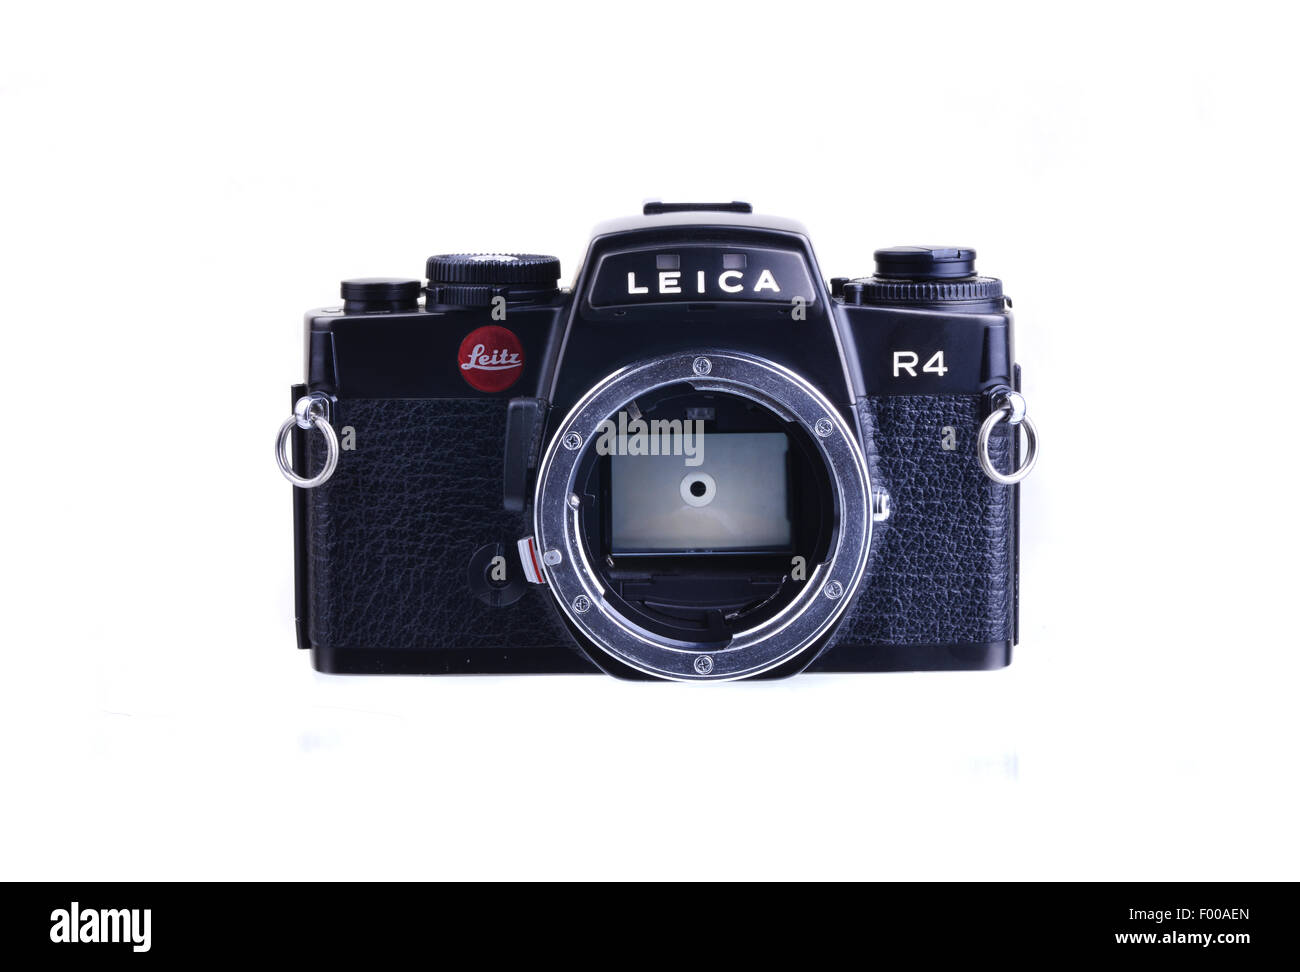 PANAMA, PANAMA - JULY 30, 2015: Leica R4  were 35mm SLR cameras manufactured by Leica between 1980 and 1996 - Stock Image